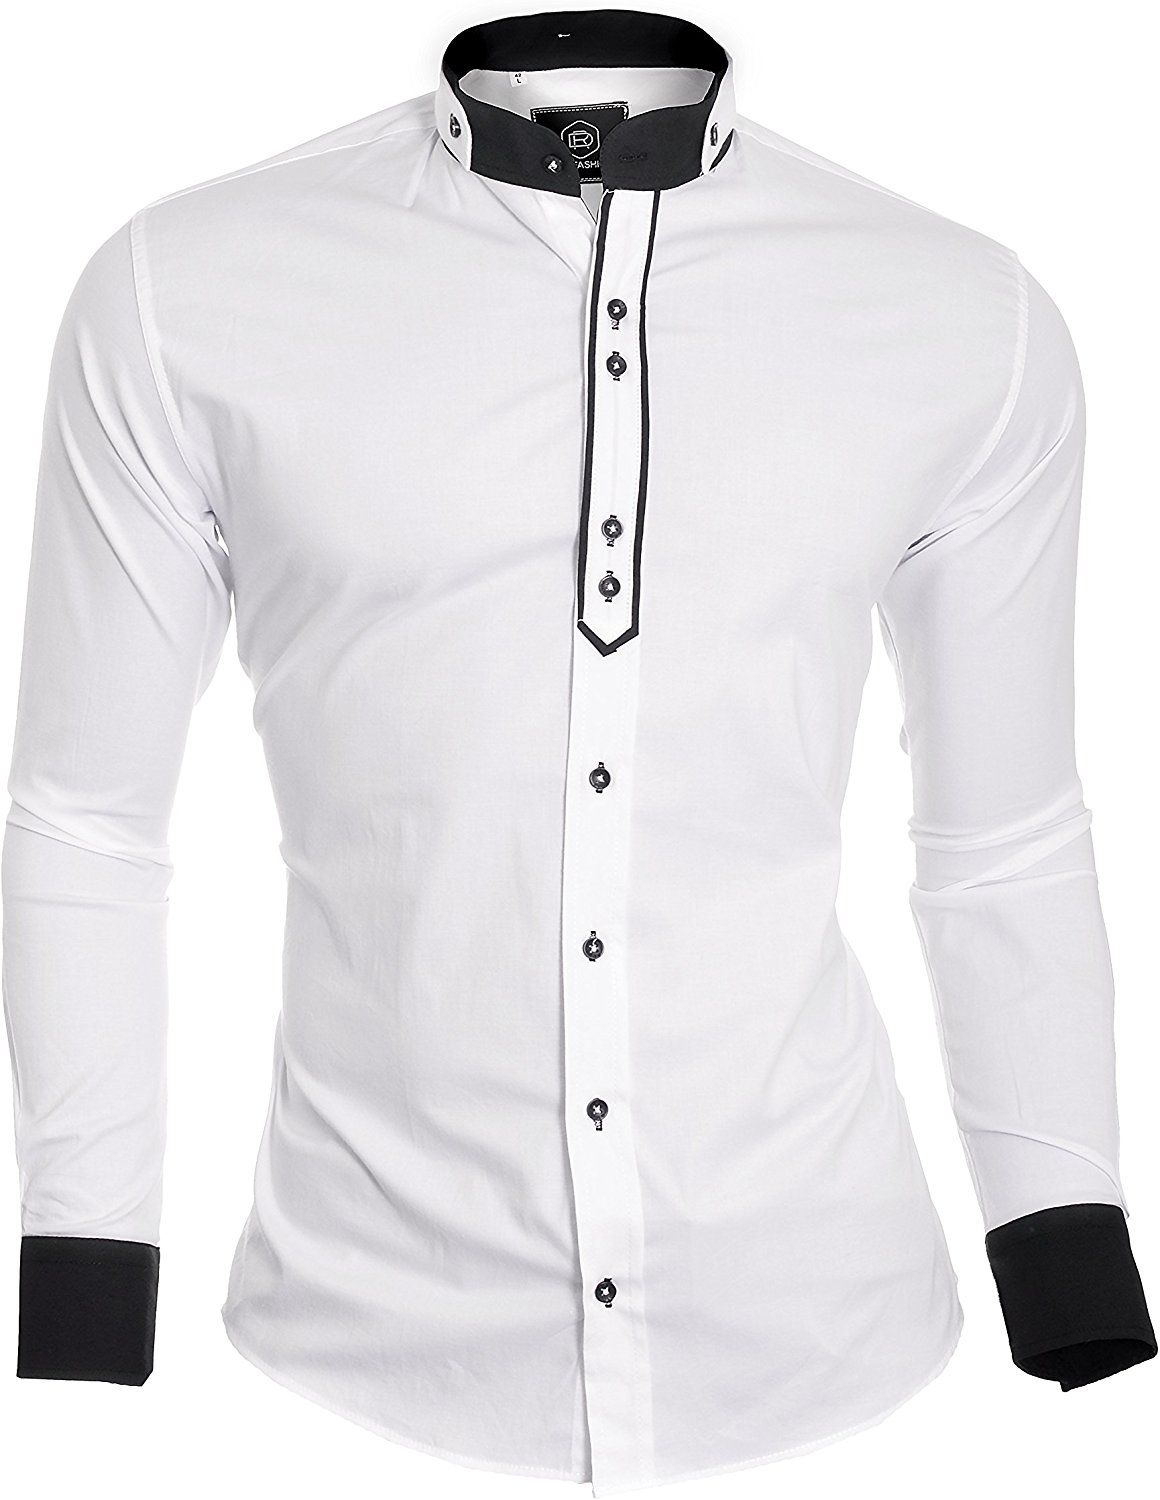 Dr Fashion Designer Mens Shirt With Double Cuffs And Grandad Band